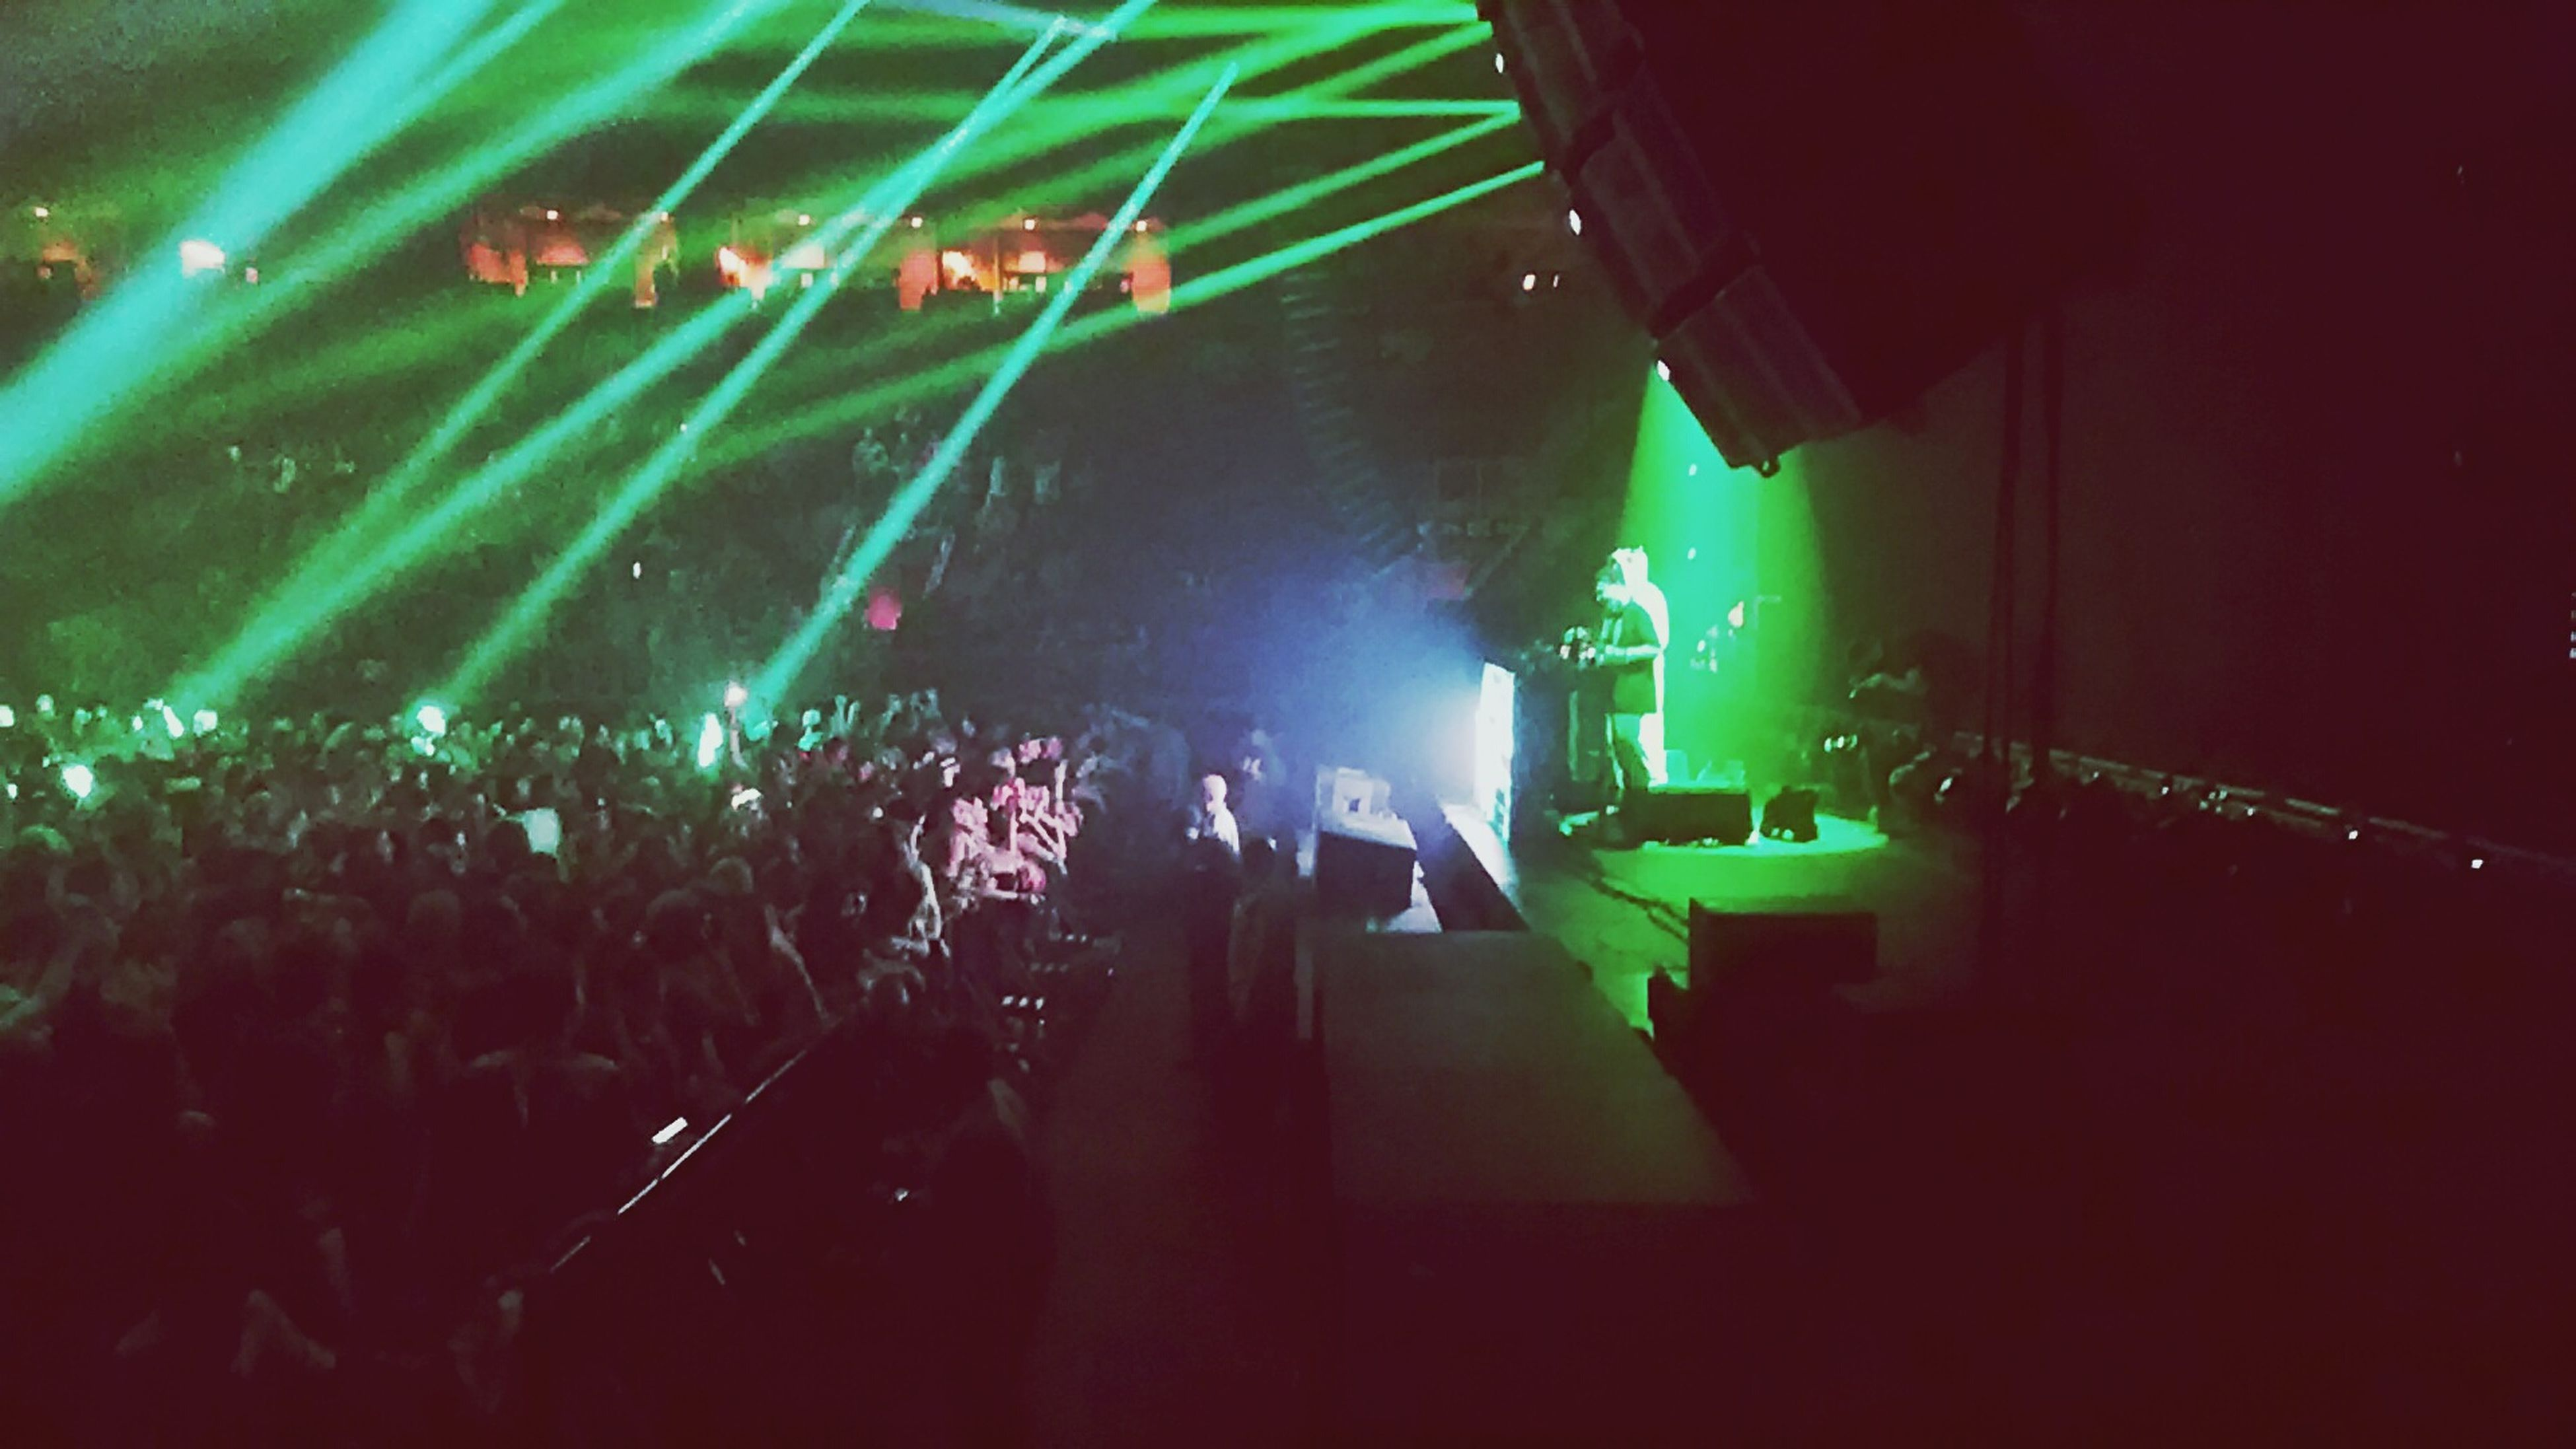 Excision 1st Bank Center Heavy Dub Sterling Neckbrace Wildin Out Fun Off The Wall First Eyeem Photo